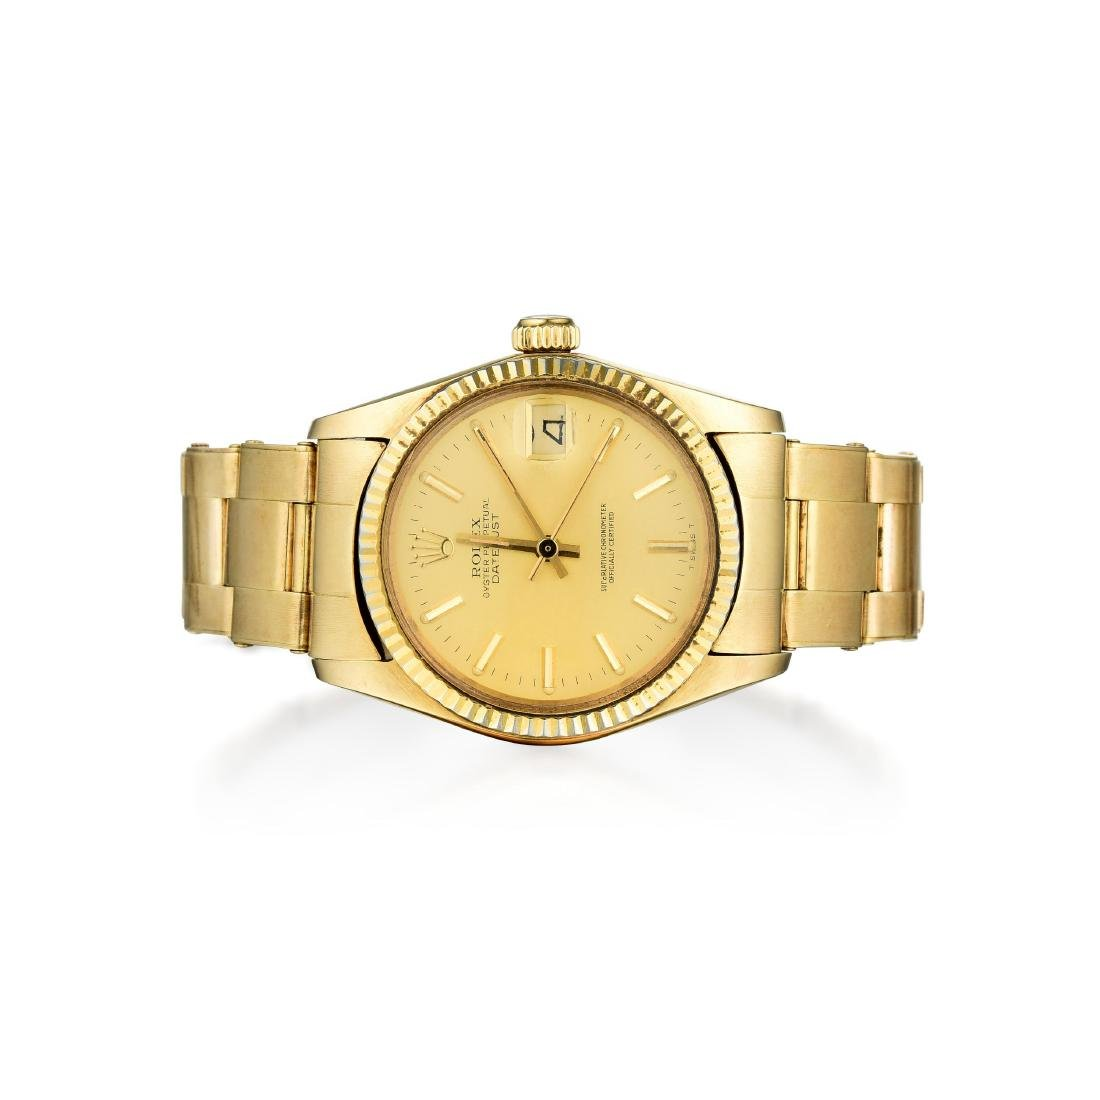 Rolex Mid-Size Gold Oyster Perpetual Datejust Watch